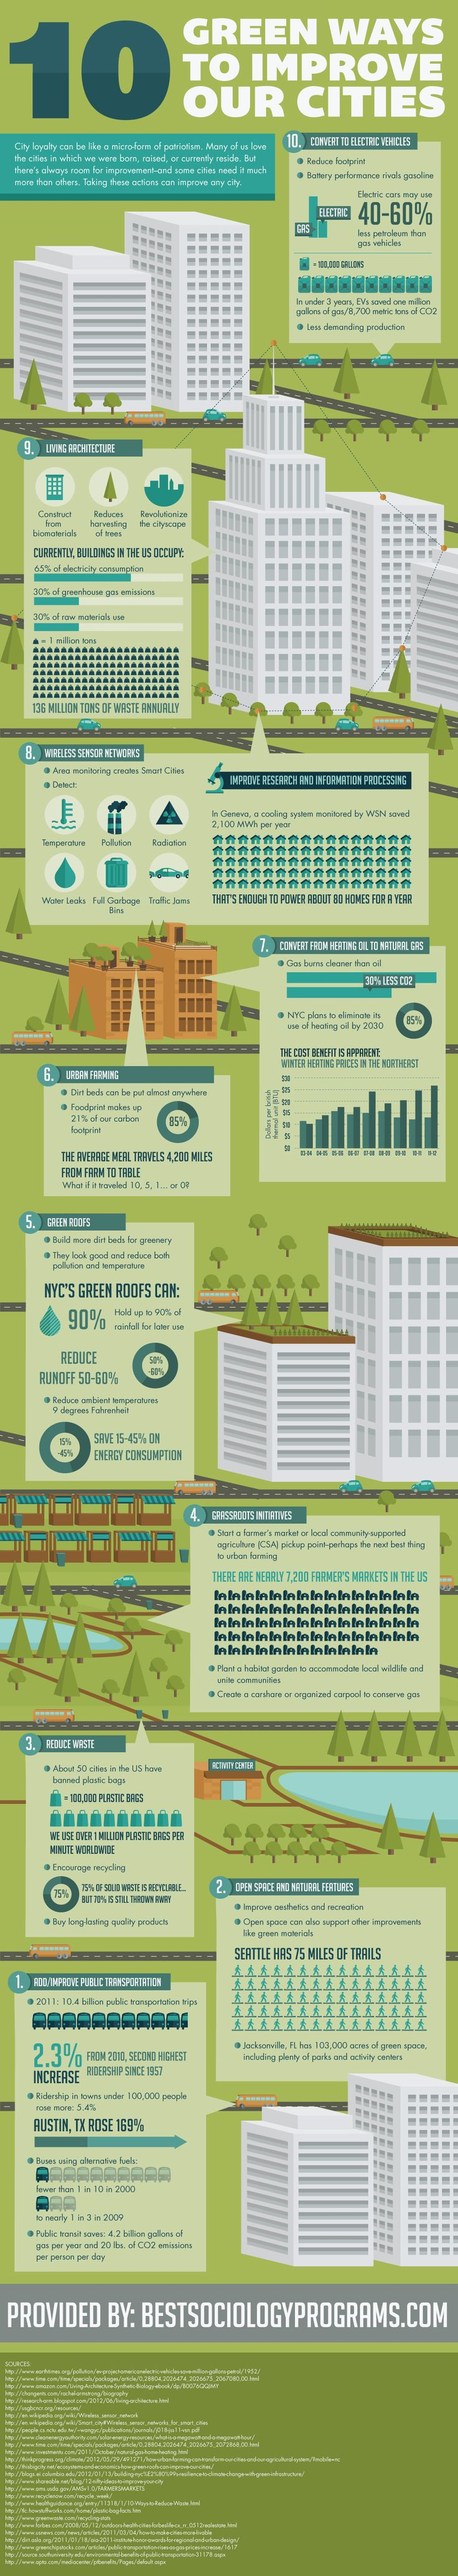 Top 10 green ways to improve our cities